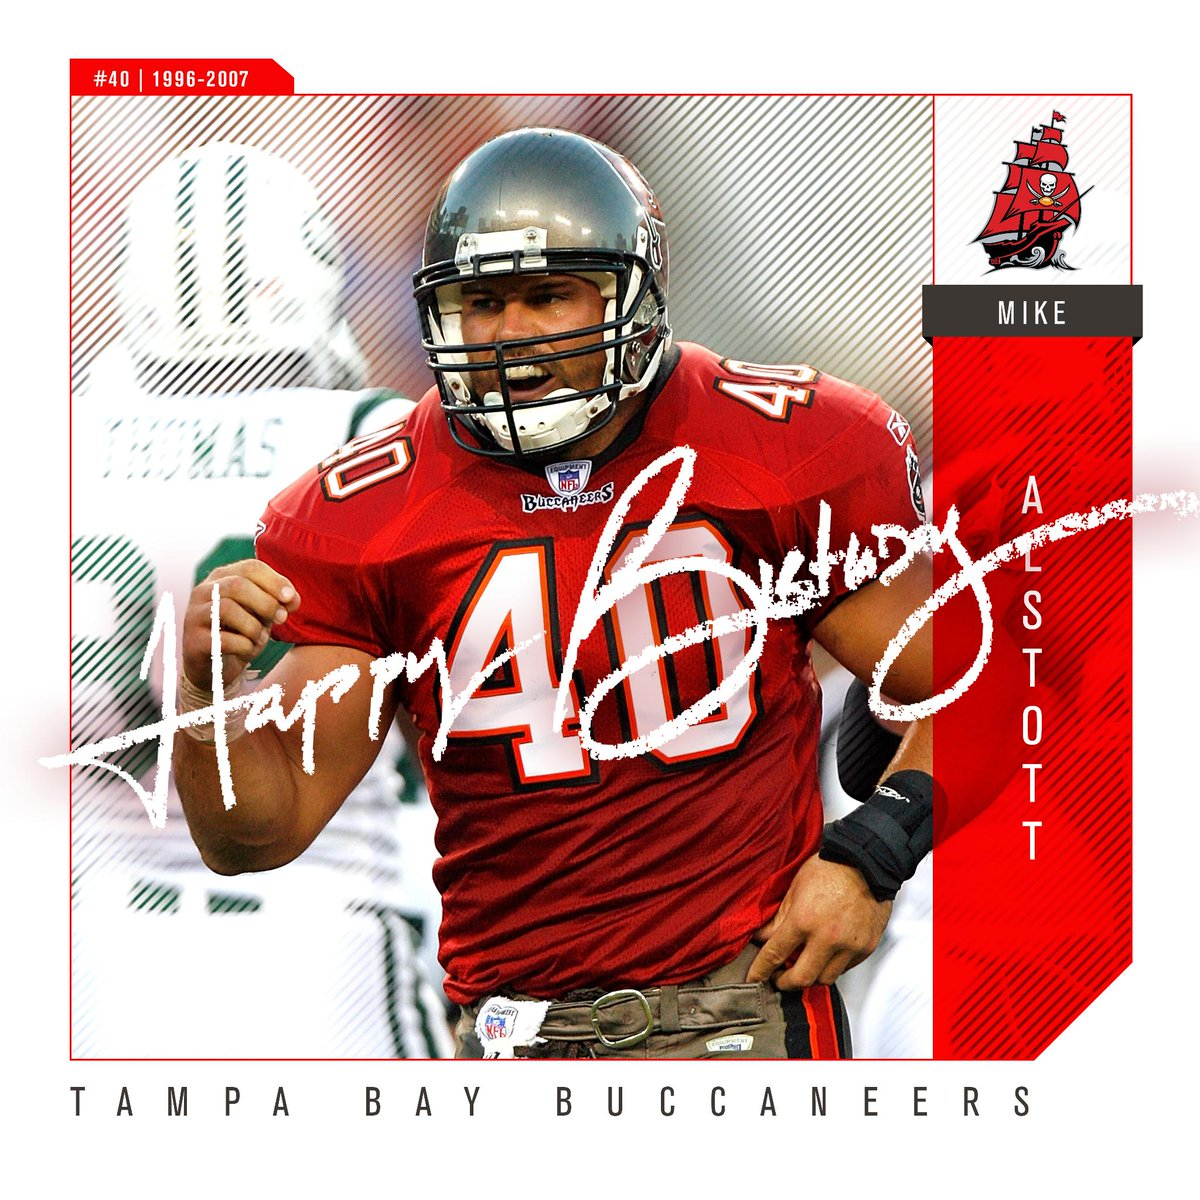 outlet store 3f39b aa31c Tampa Bay Buccaneers on Twitter: